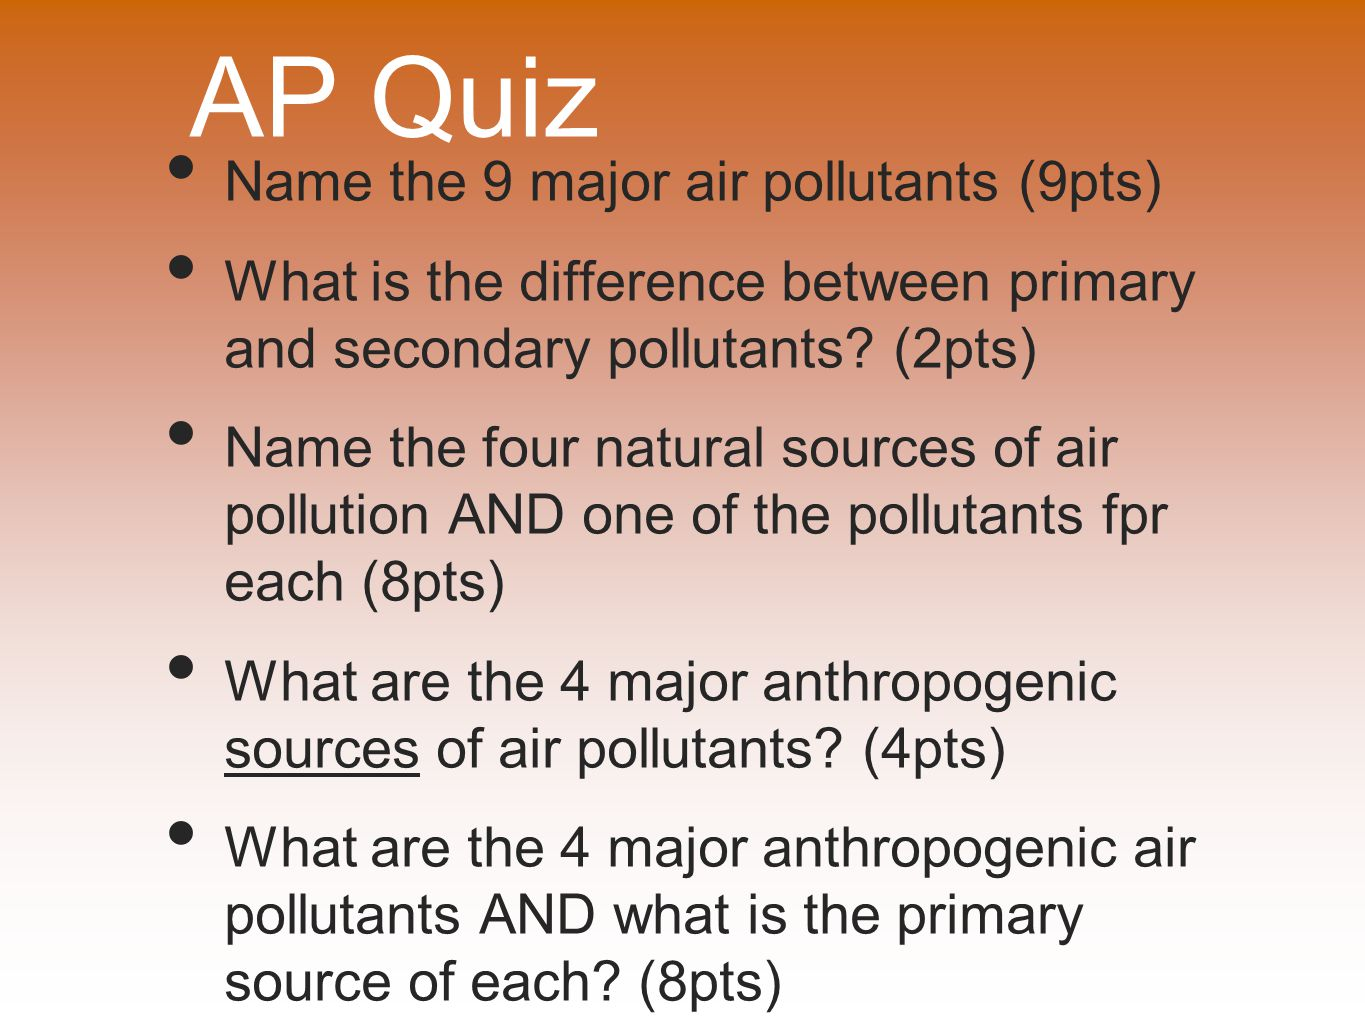 AP Quiz Name the 9 major air pollutants (9pts) What is the difference between primary and secondary pollutants? (2pts) Name the four natural sources o